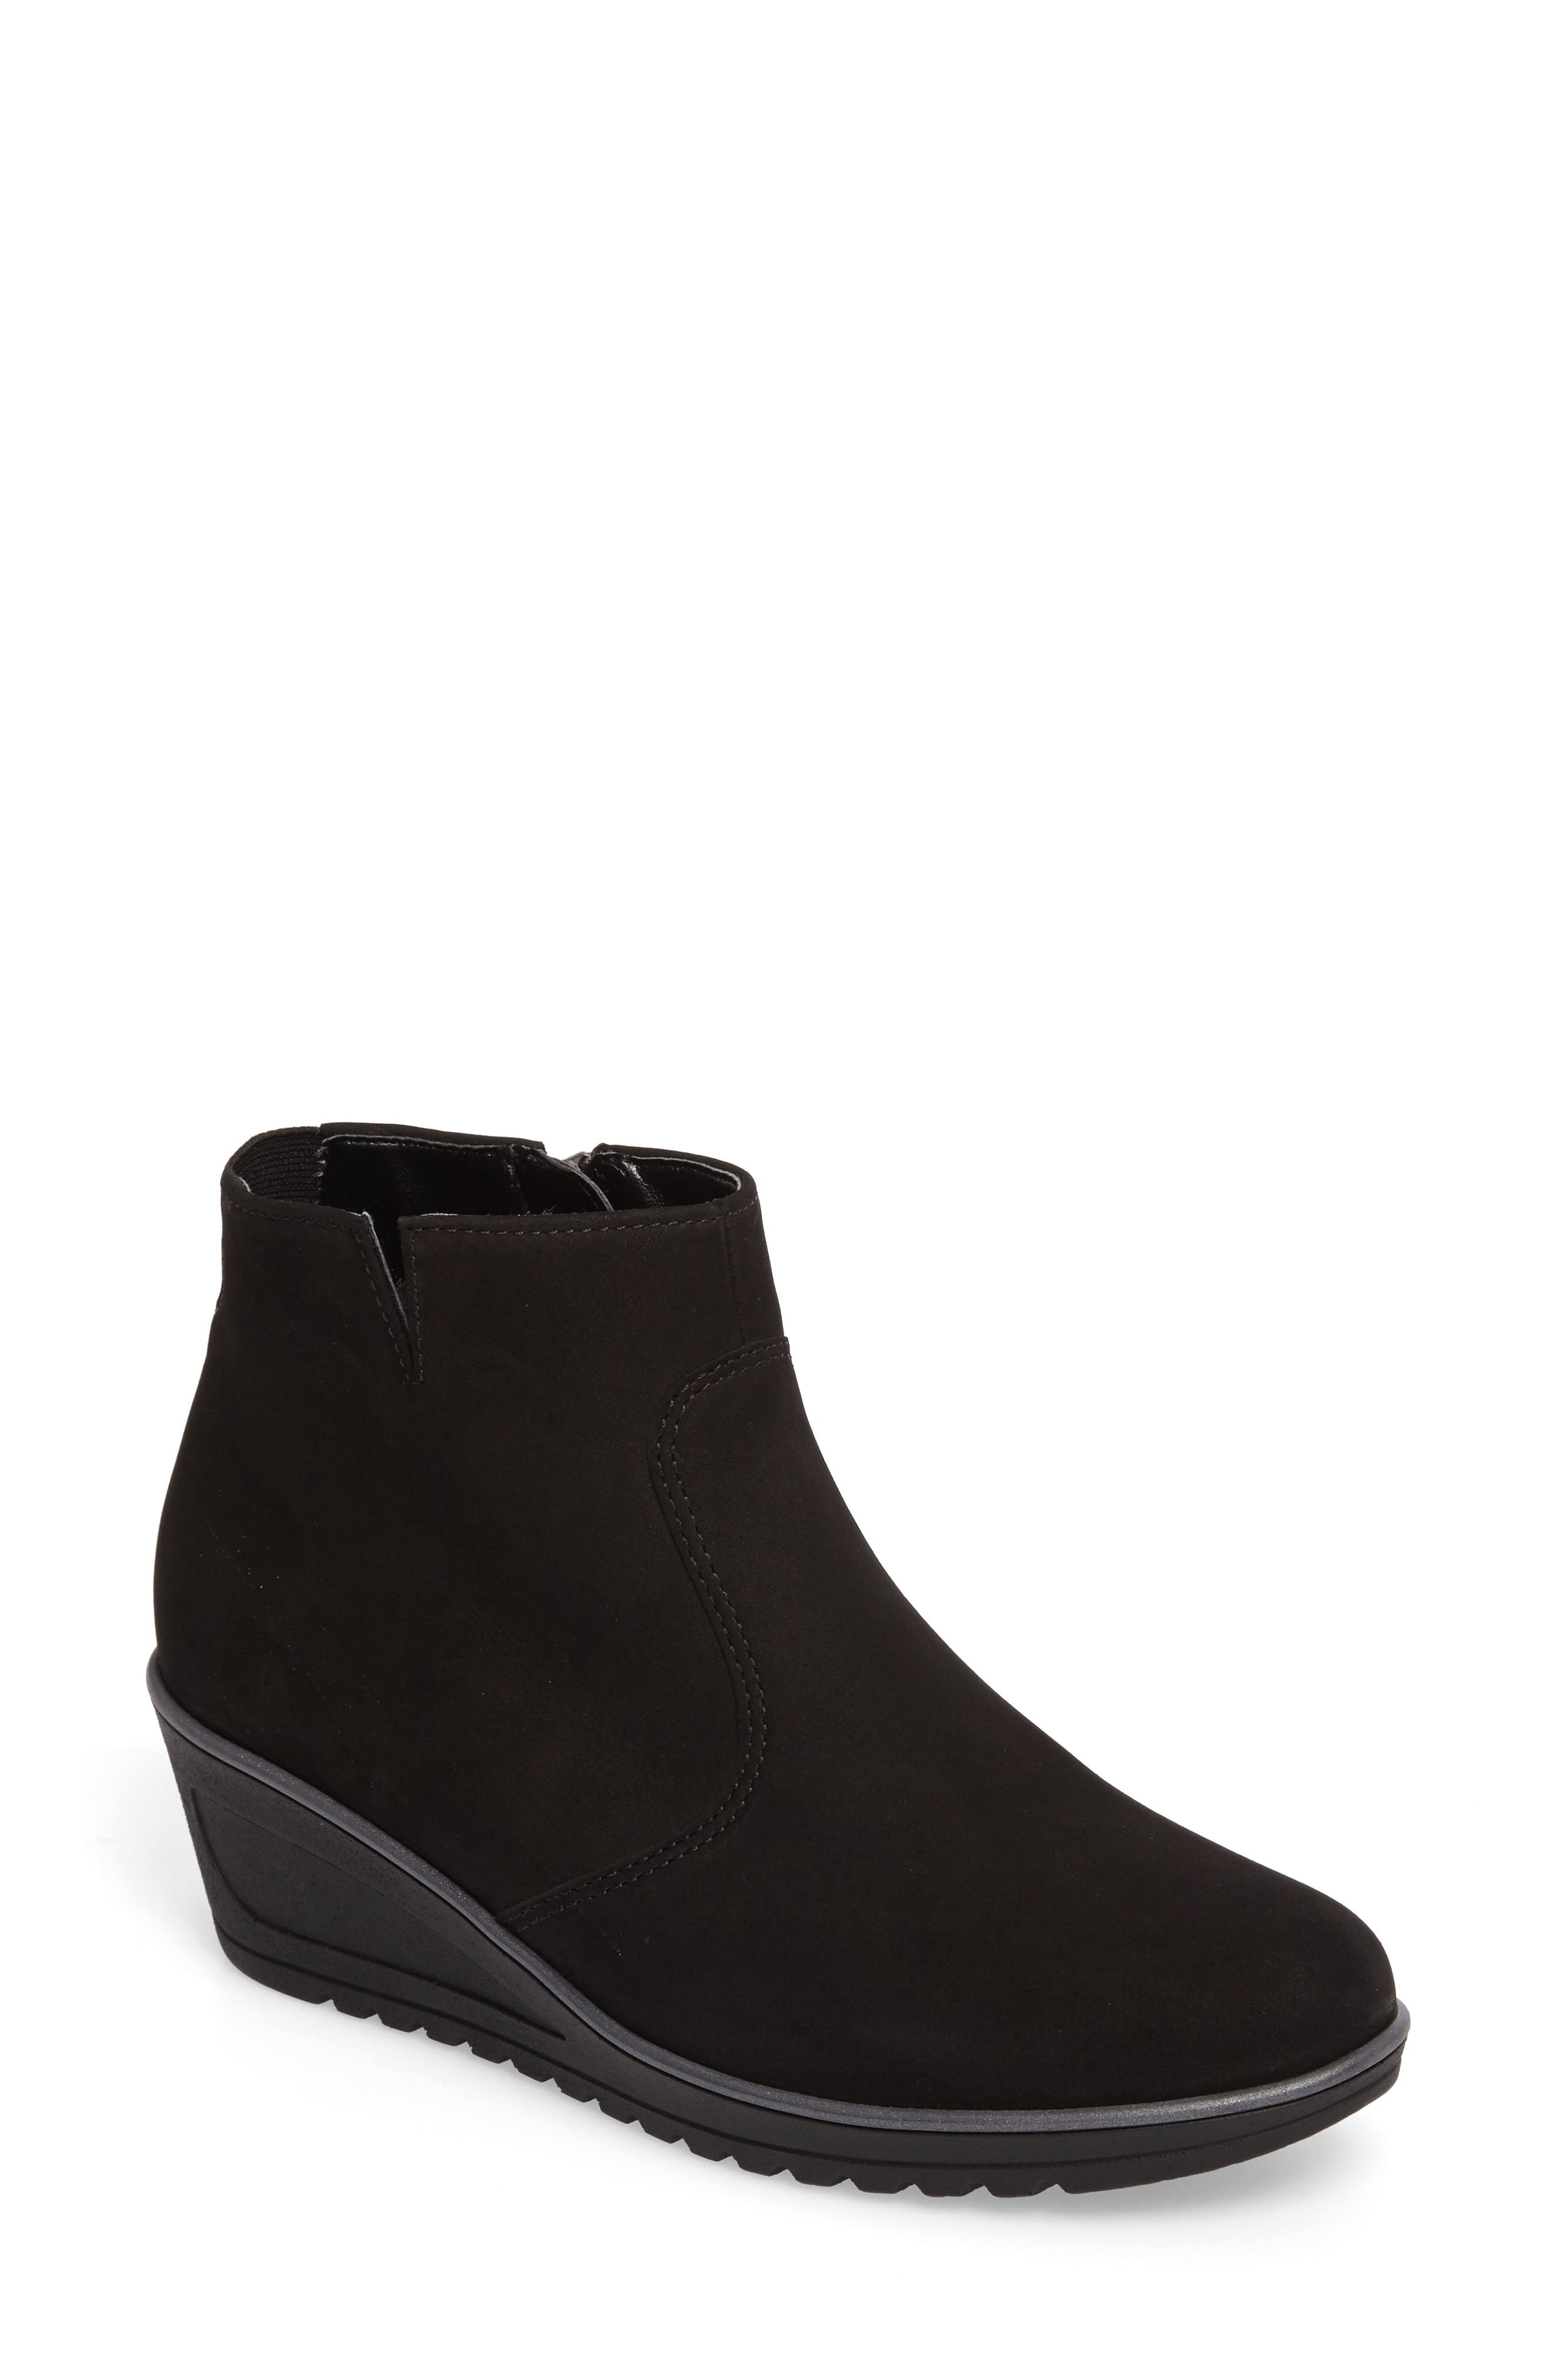 Hessa Wedge Bootie,                             Main thumbnail 1, color,                             BLACK LEATHER